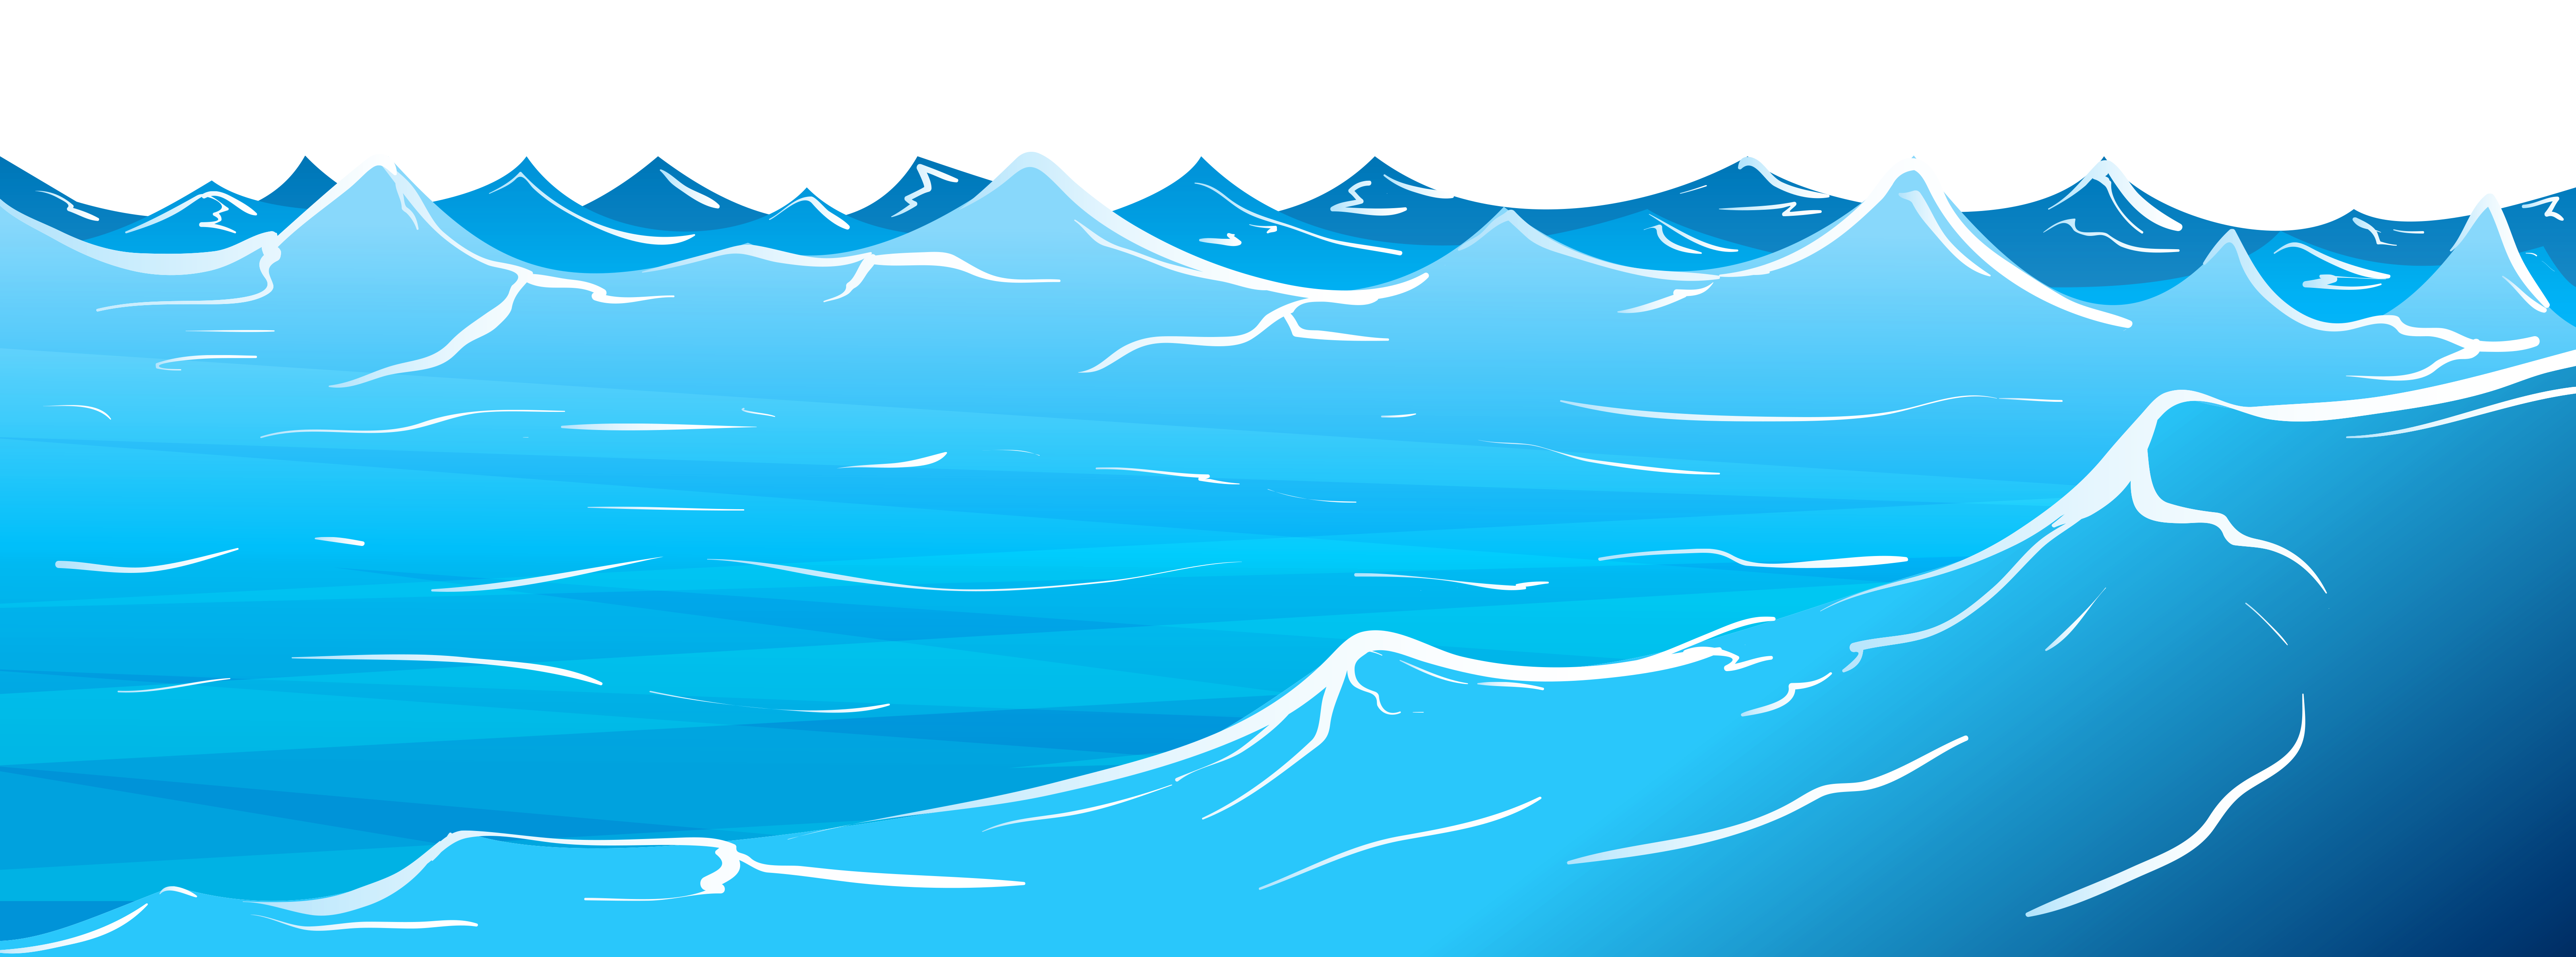 Waves clipart ocean current. World sea wind wave